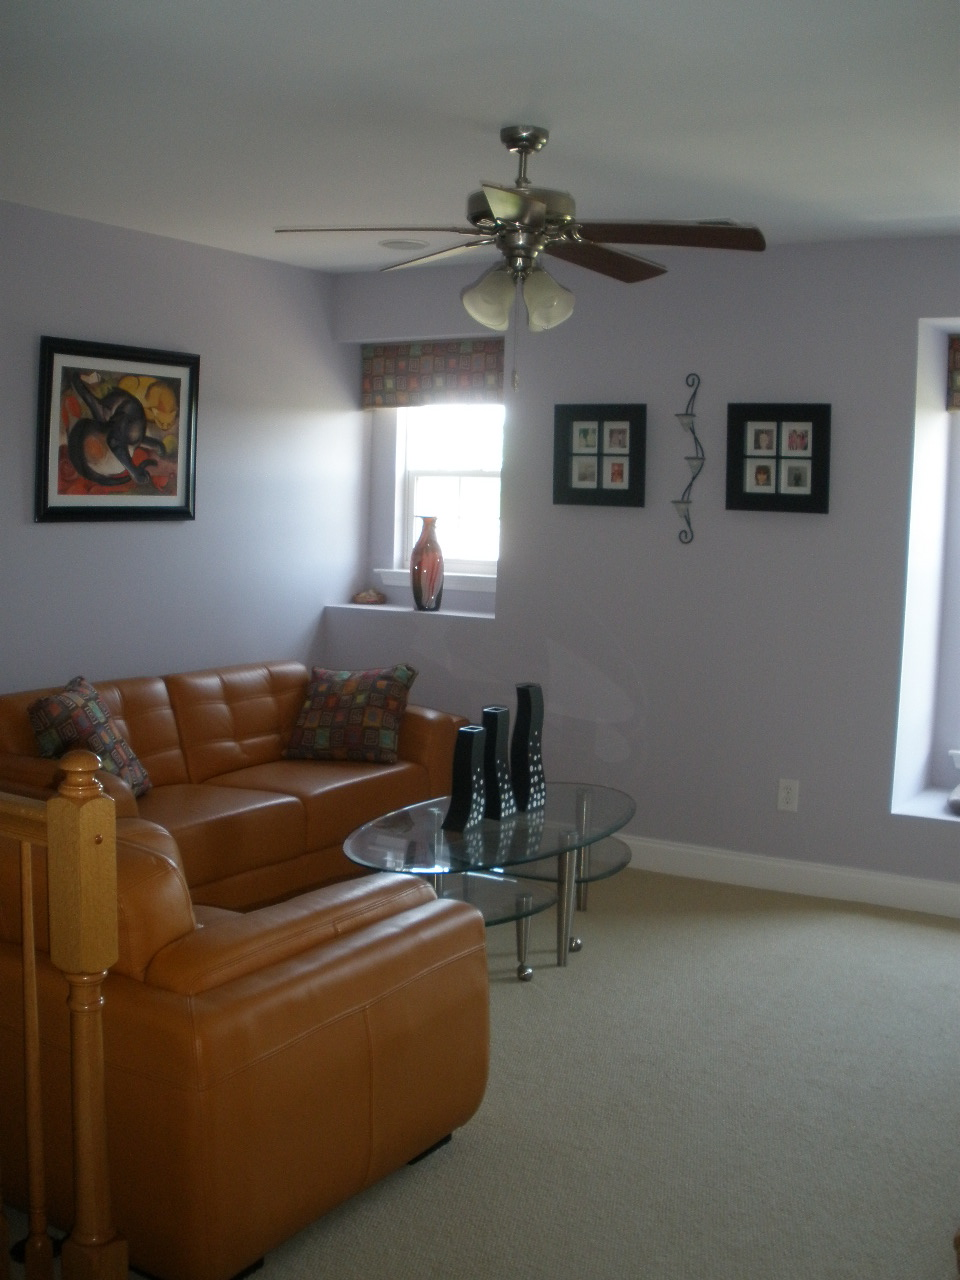 House for Rent in Charlotte, NC-p4290010.jpg